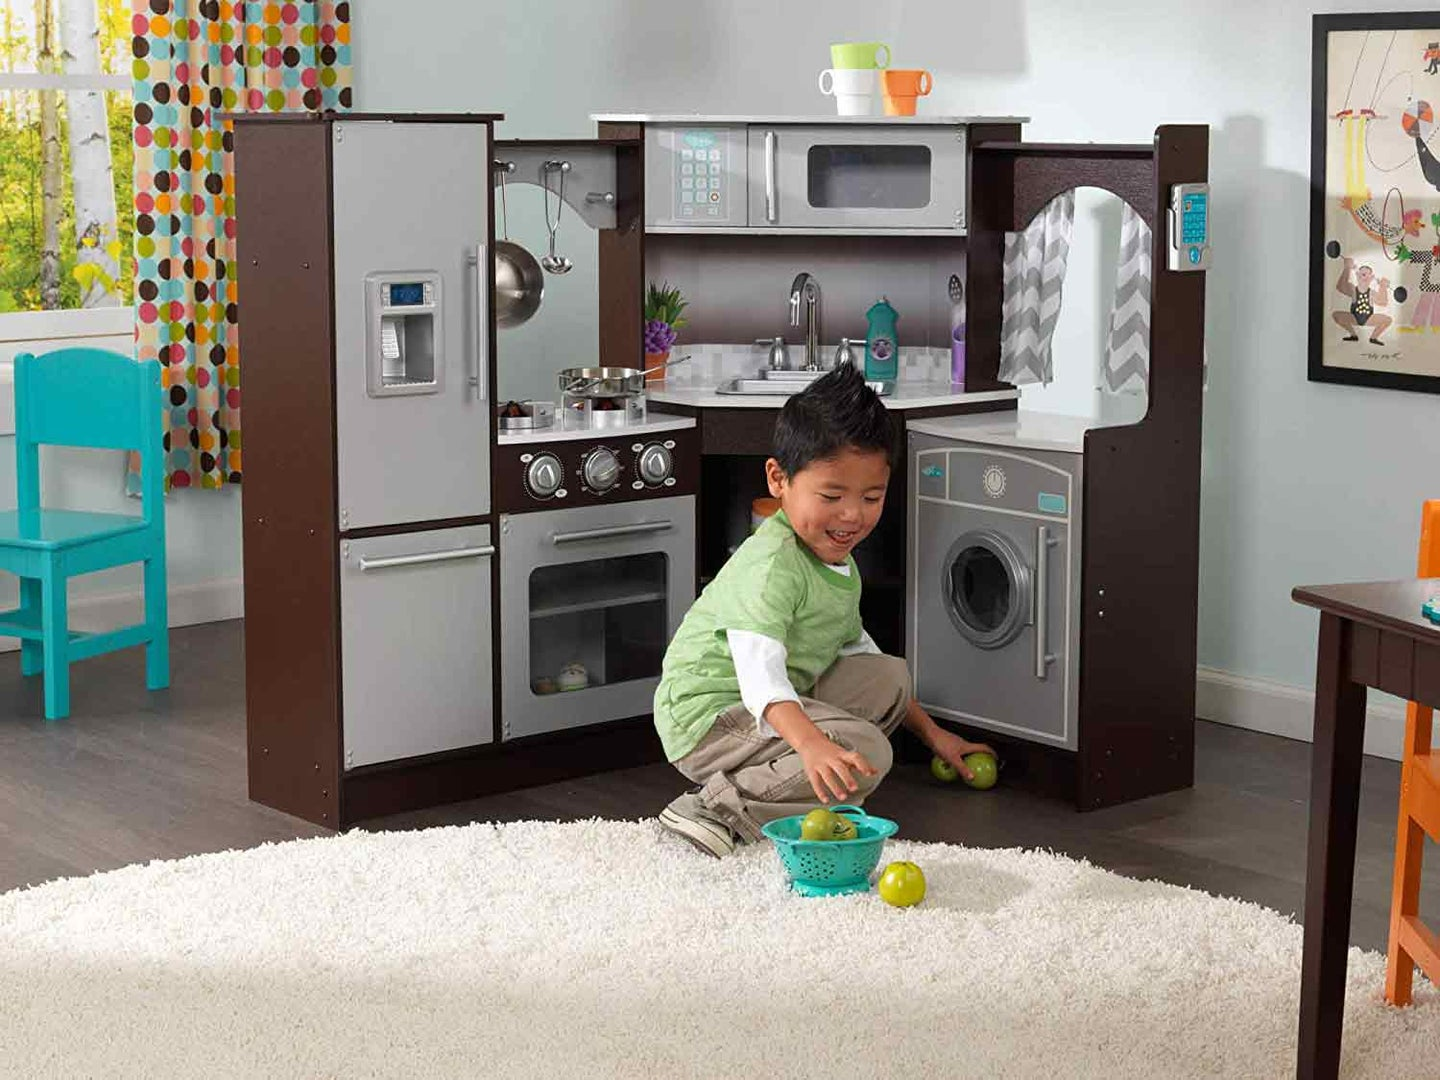 Kid playing with kitchen set